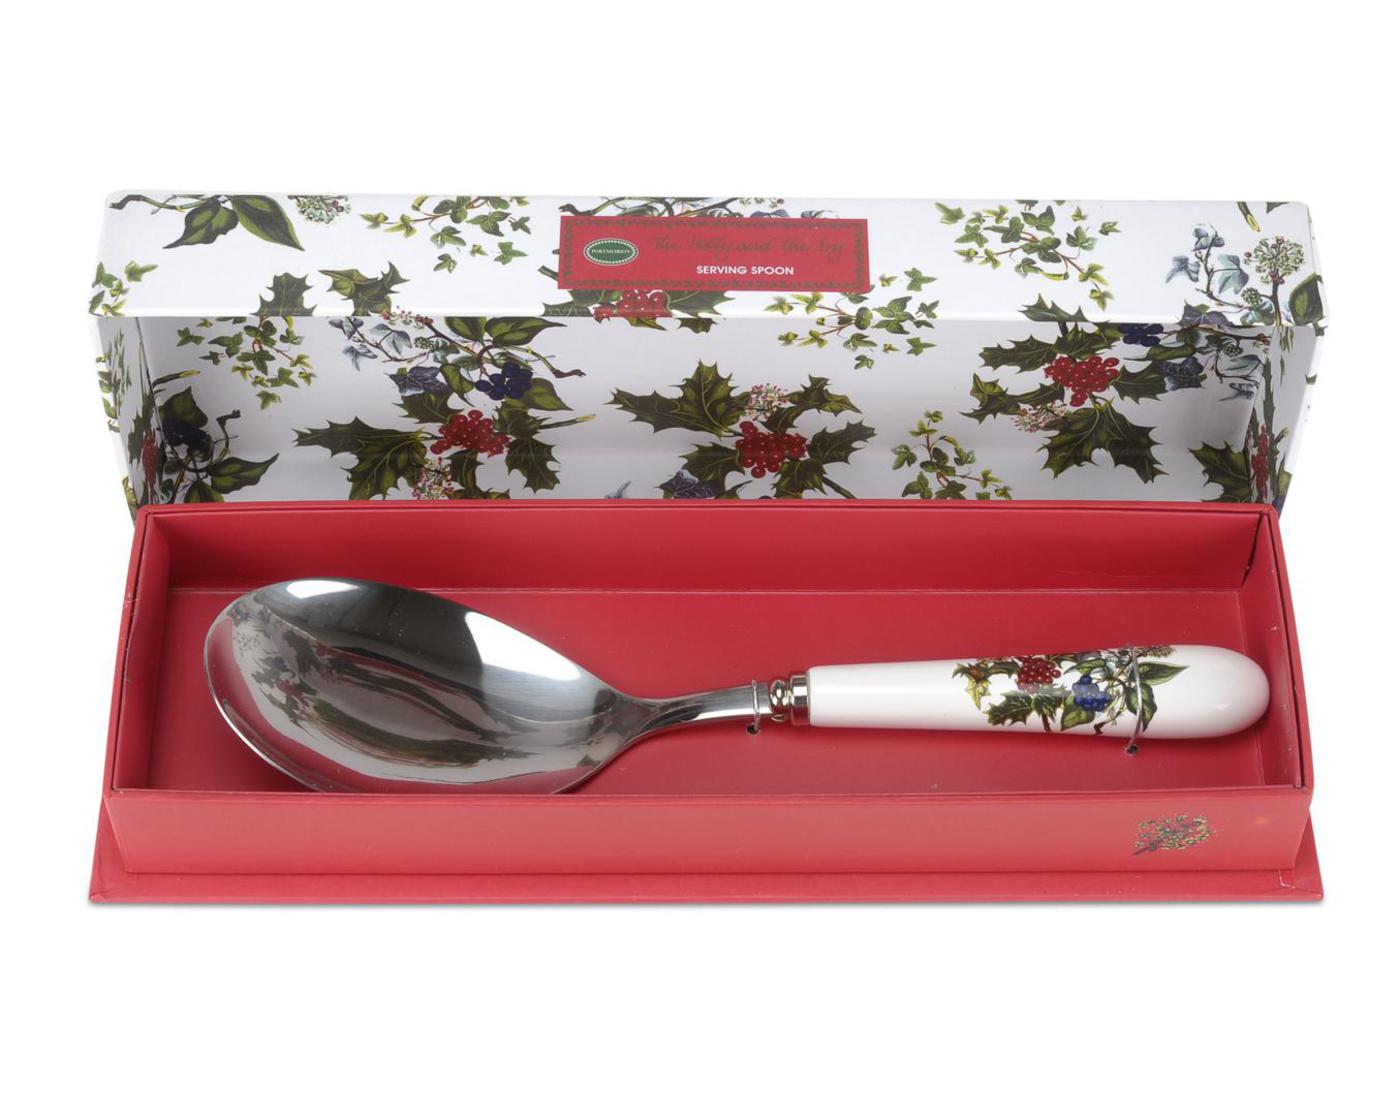 Portmeirion The Holly and The Ivy Serving Spoon image number 0